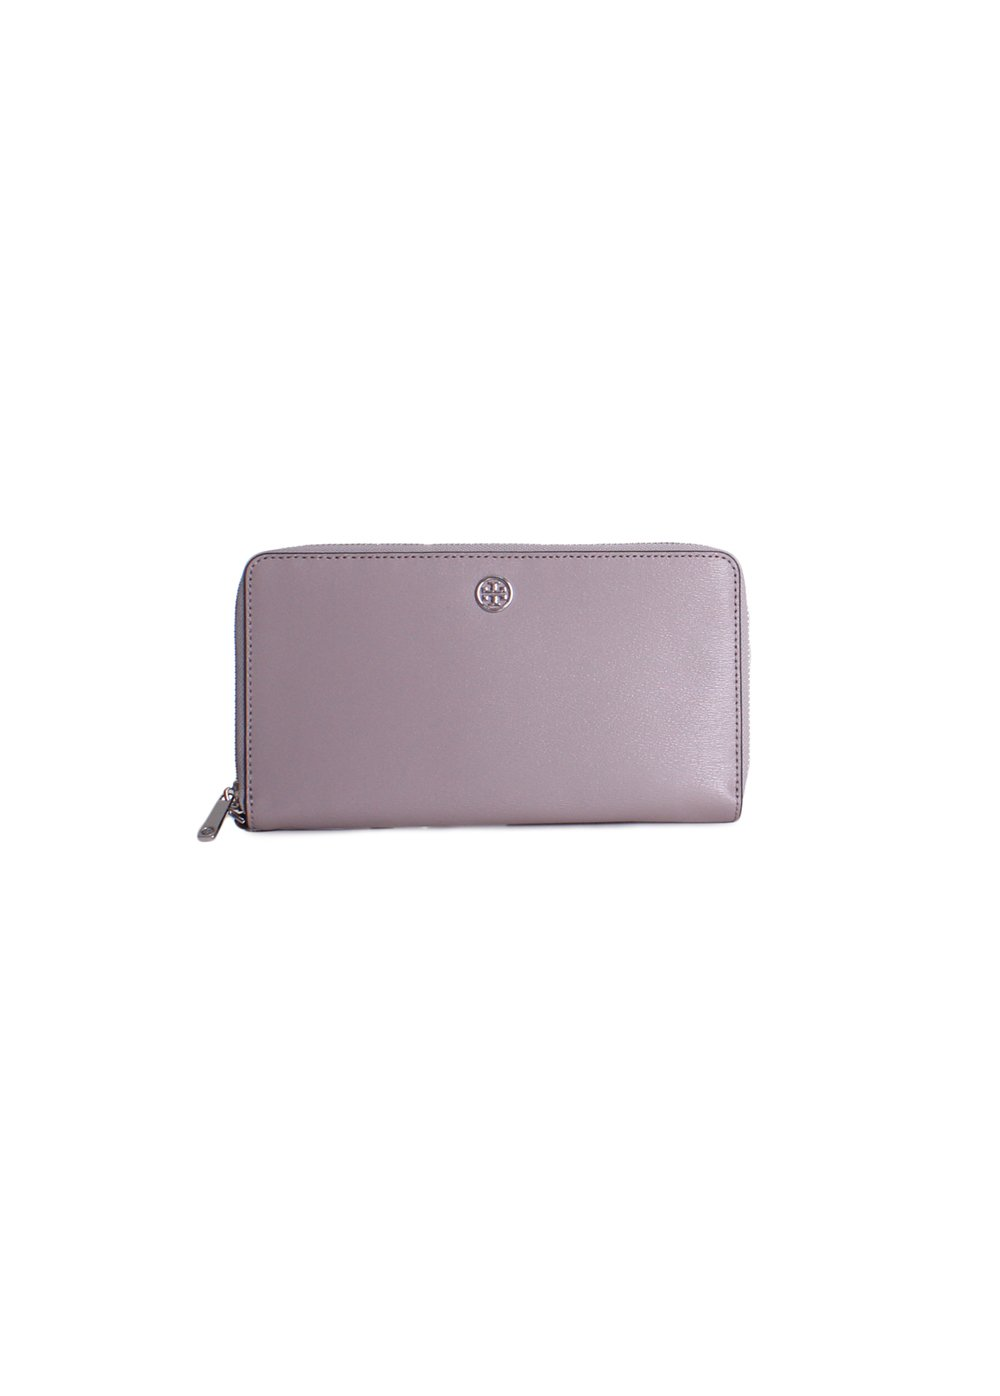 Tory Burch Parker Travel Continental Wristlet Wallet in Dust Storm